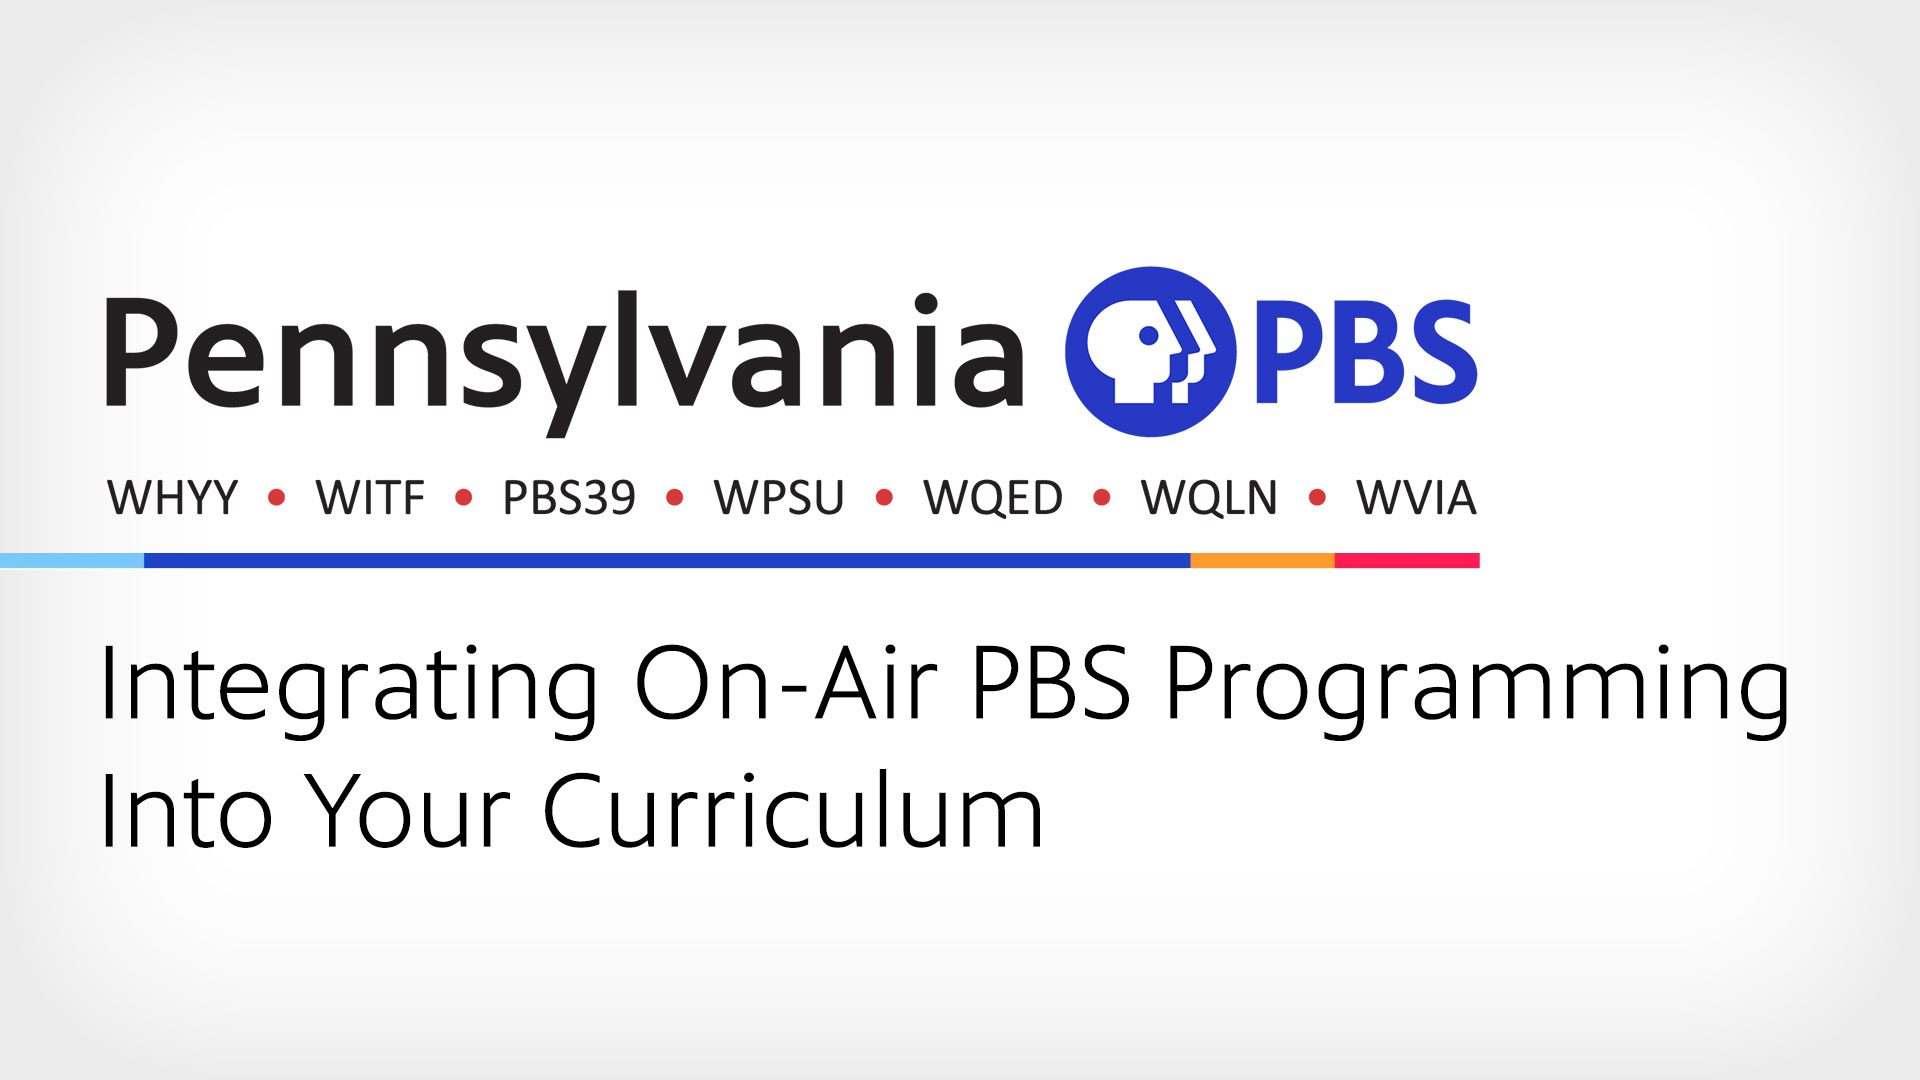 Integrating On-Air PBS Programming Into Your Curriculum